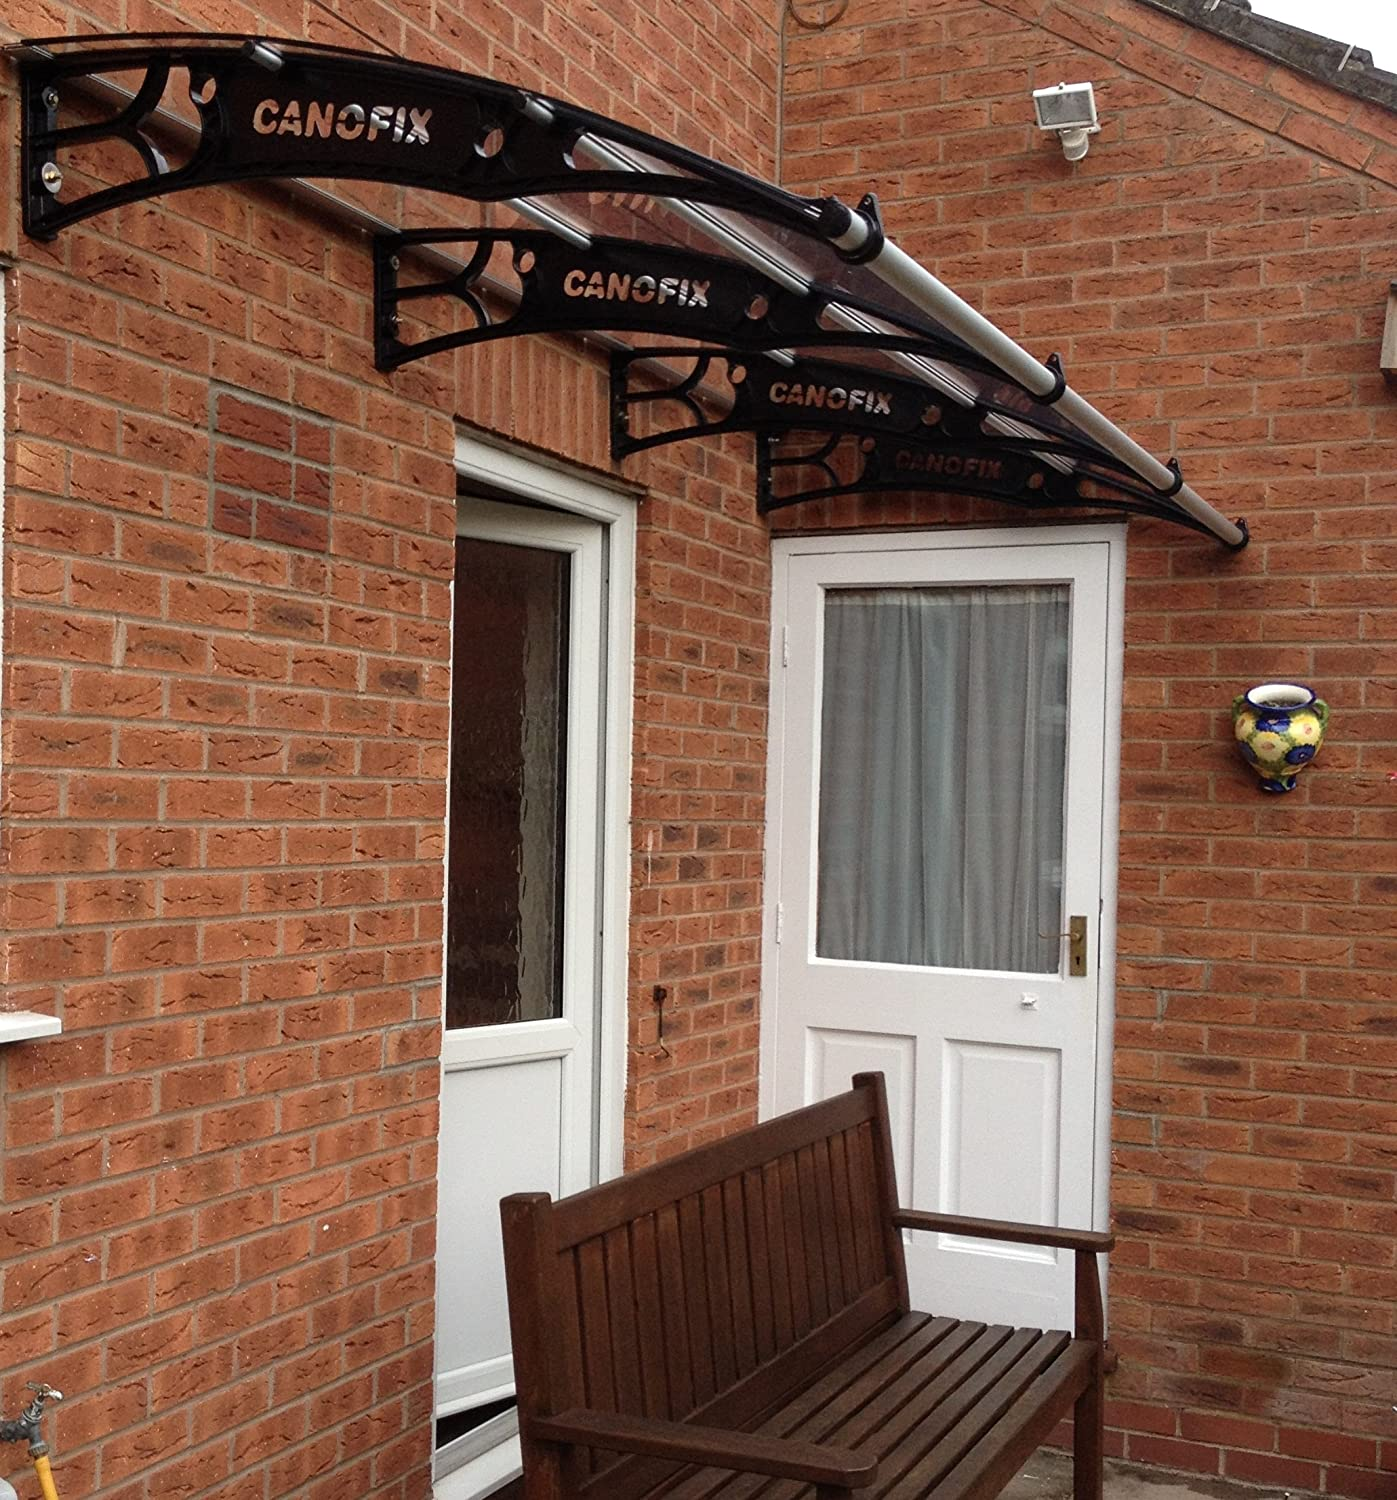 DIY Polycarbonate Cantilever Door Canopy 1000x 3000mm/Front Back Door Canopy Garden Shed Solid Canopy Amazon.co.uk Garden \u0026 Outdoors & DIY Polycarbonate Cantilever Door Canopy 1000x 3000mm/Front Back ...